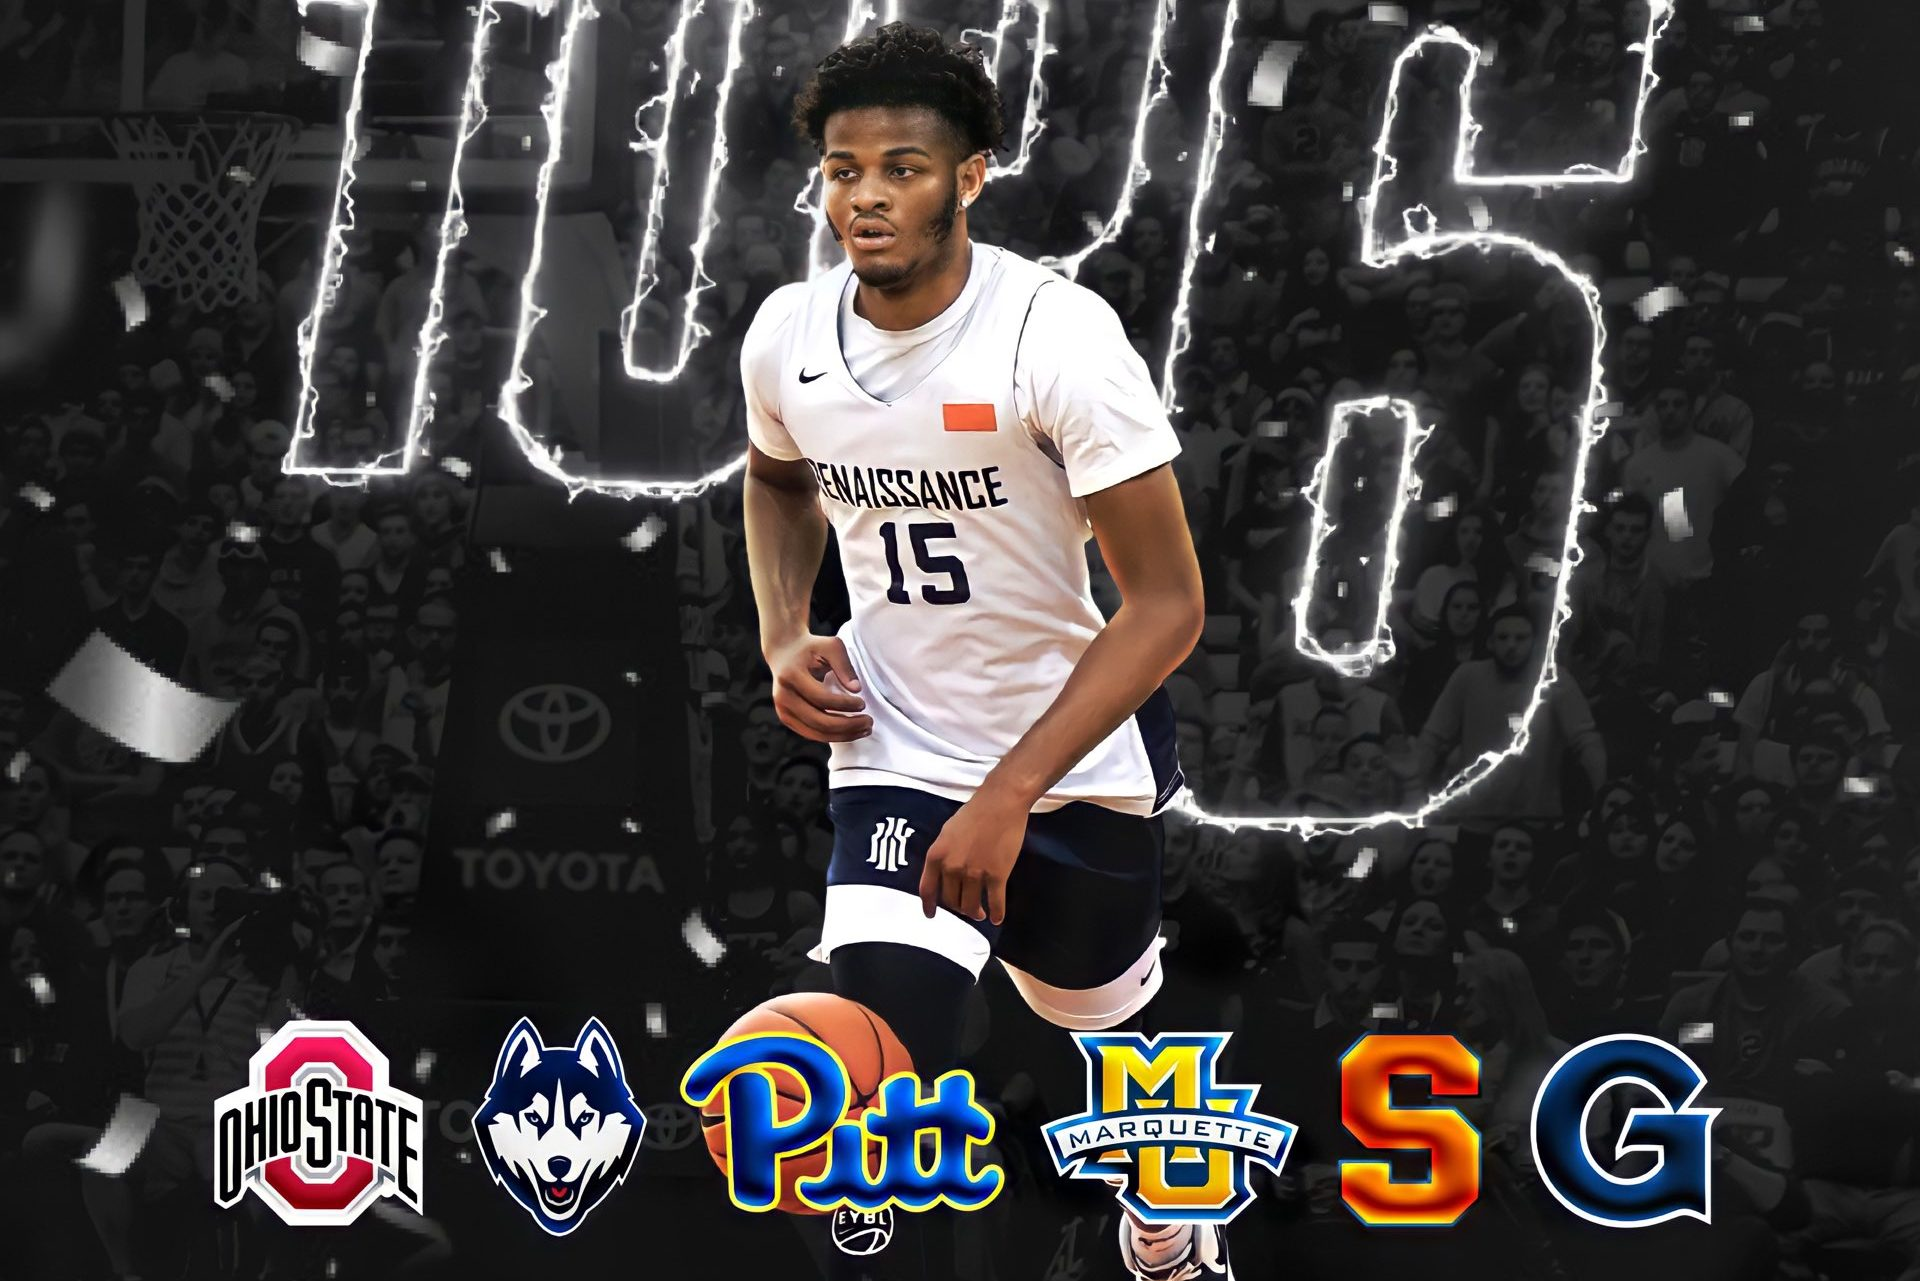 Social media announcement by Roddy Gayle of final schools in consideration for the four-star recruit.